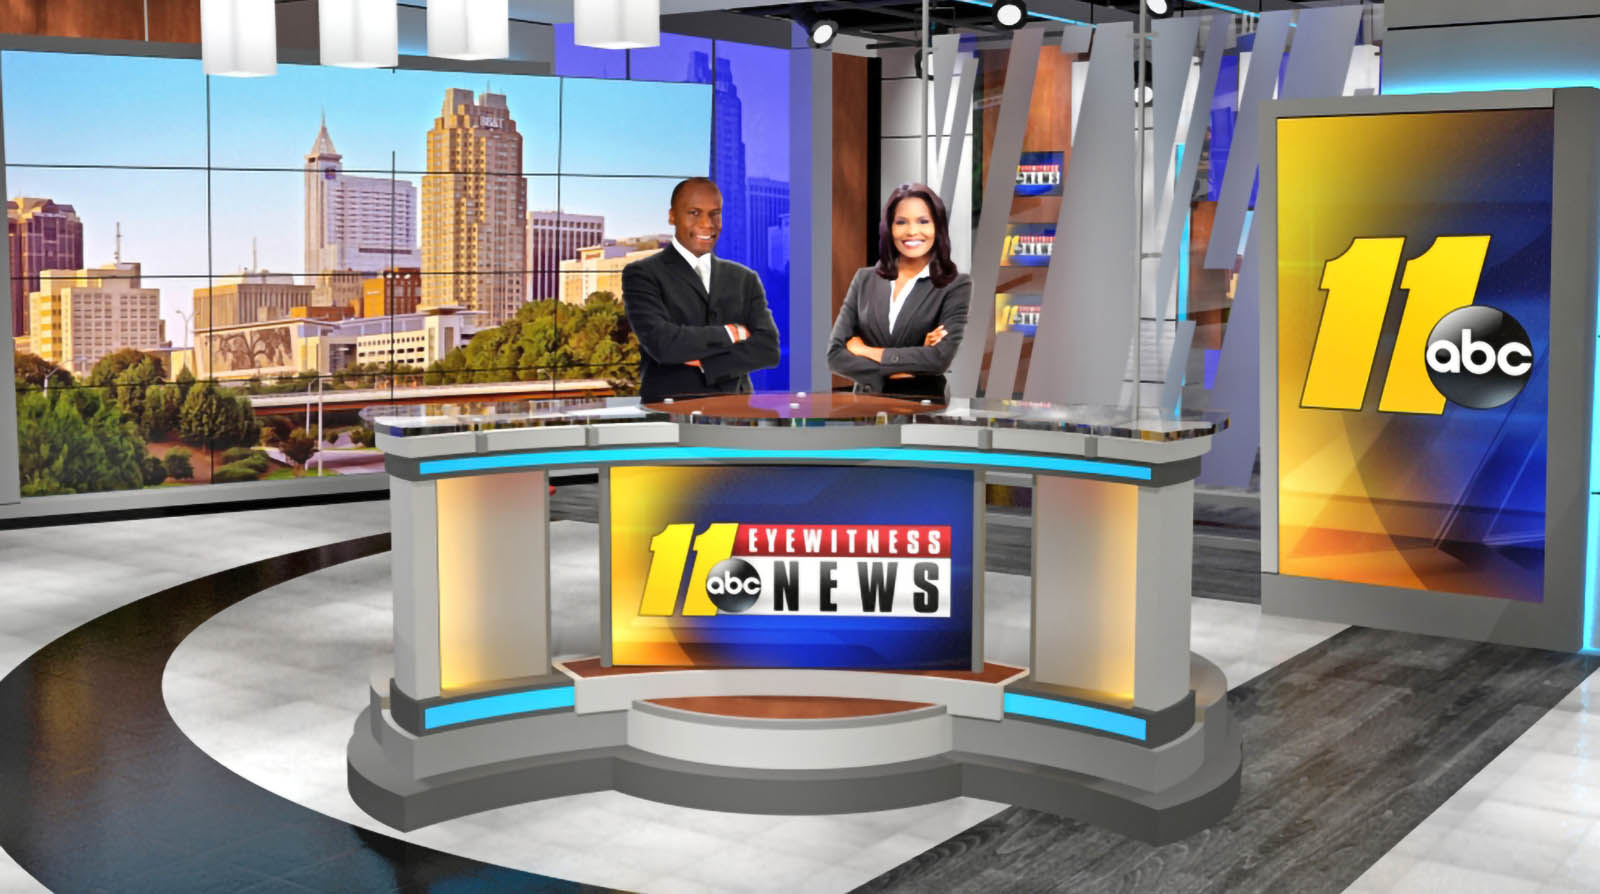 WTVD News Newscasters at Studio